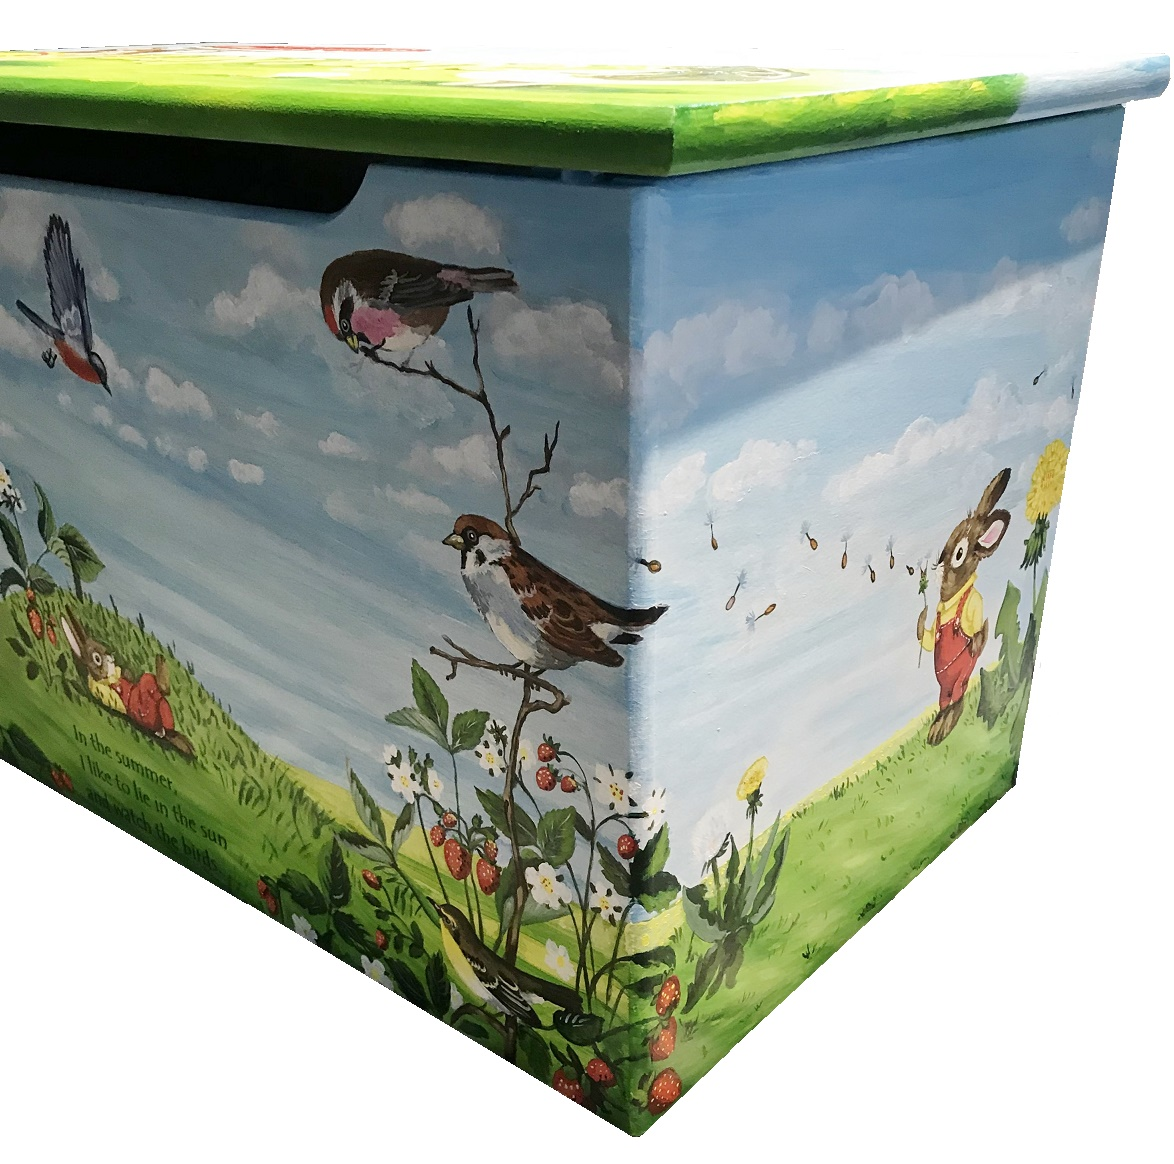 Murals By Marg LiLy June's Toy Box 6